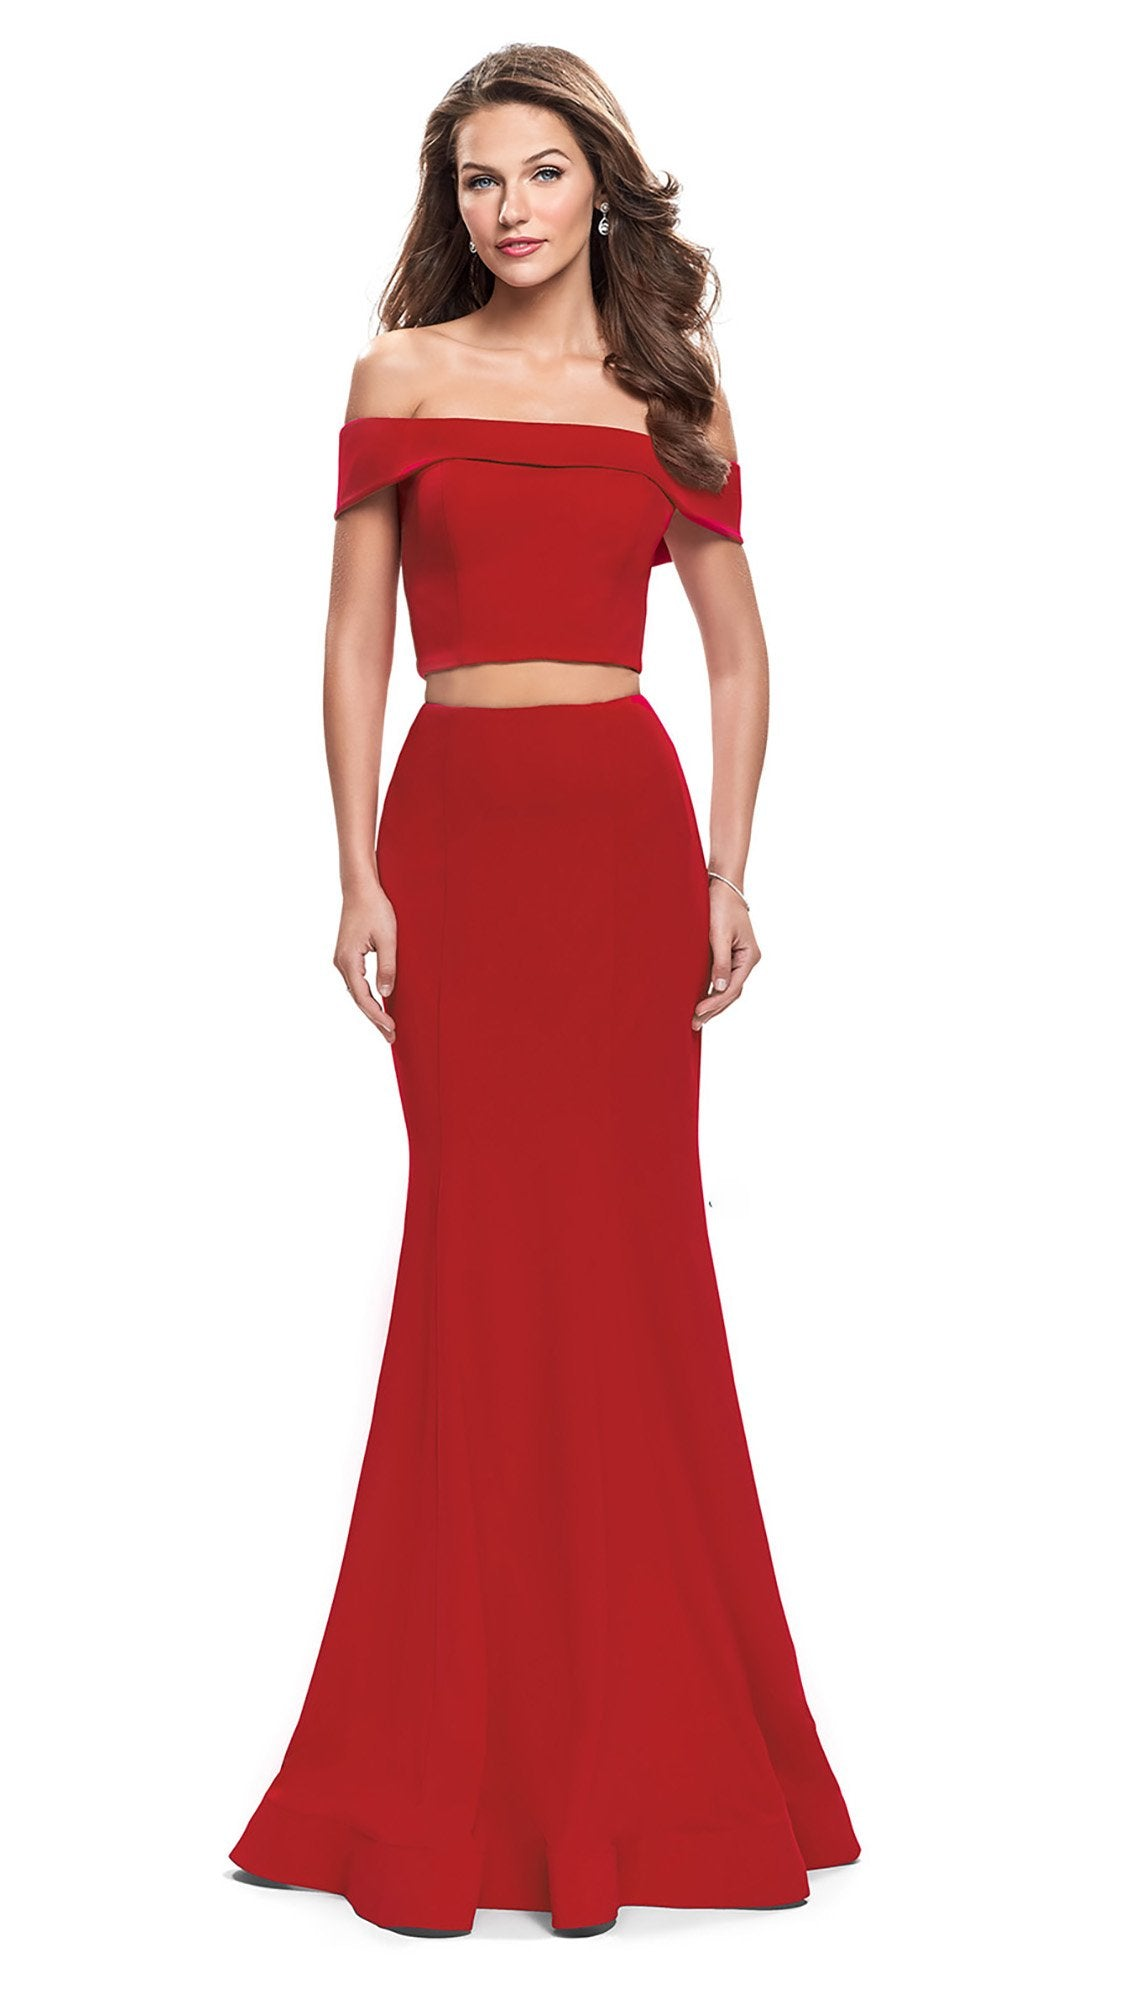 La Femme - 25578SC Two-Piece Off Shoulder Mermaid Dress